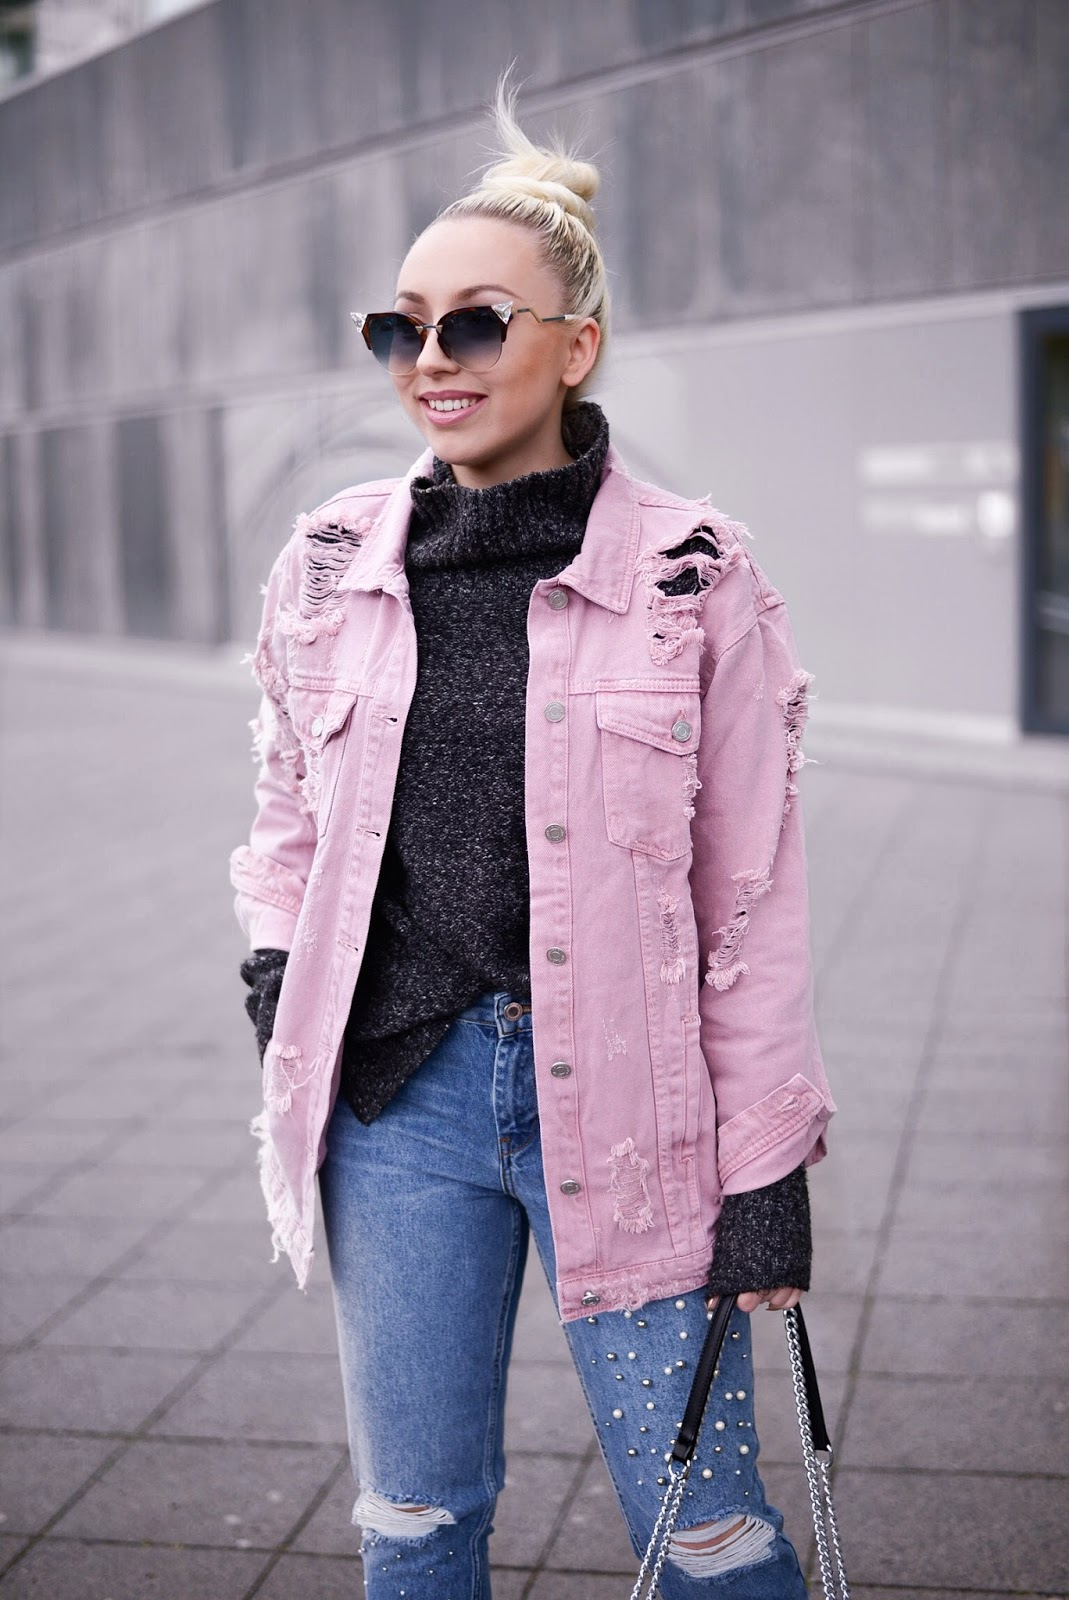 fendi iridia sunglasses_fendi sunglasses_topshop denim jacket_zara jeans with pearls_fendi iridia sonn